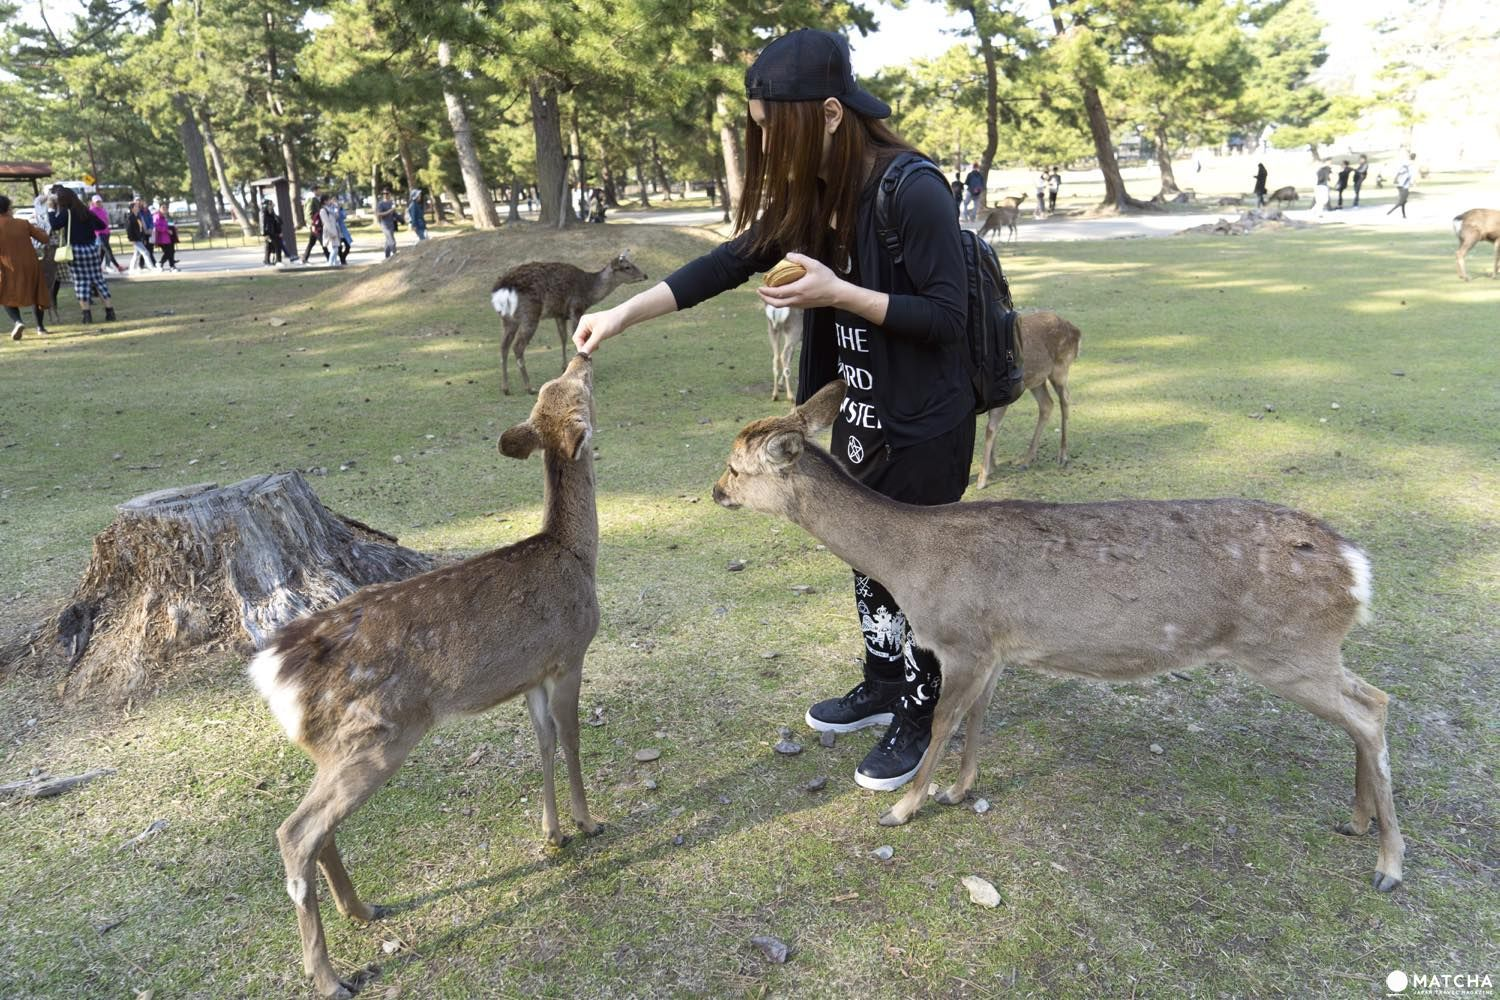 Nara S Bowing Deer 5 Tips On How To Treat Them The Right Way In 2020 Matcha Japan Japan Travel Japan